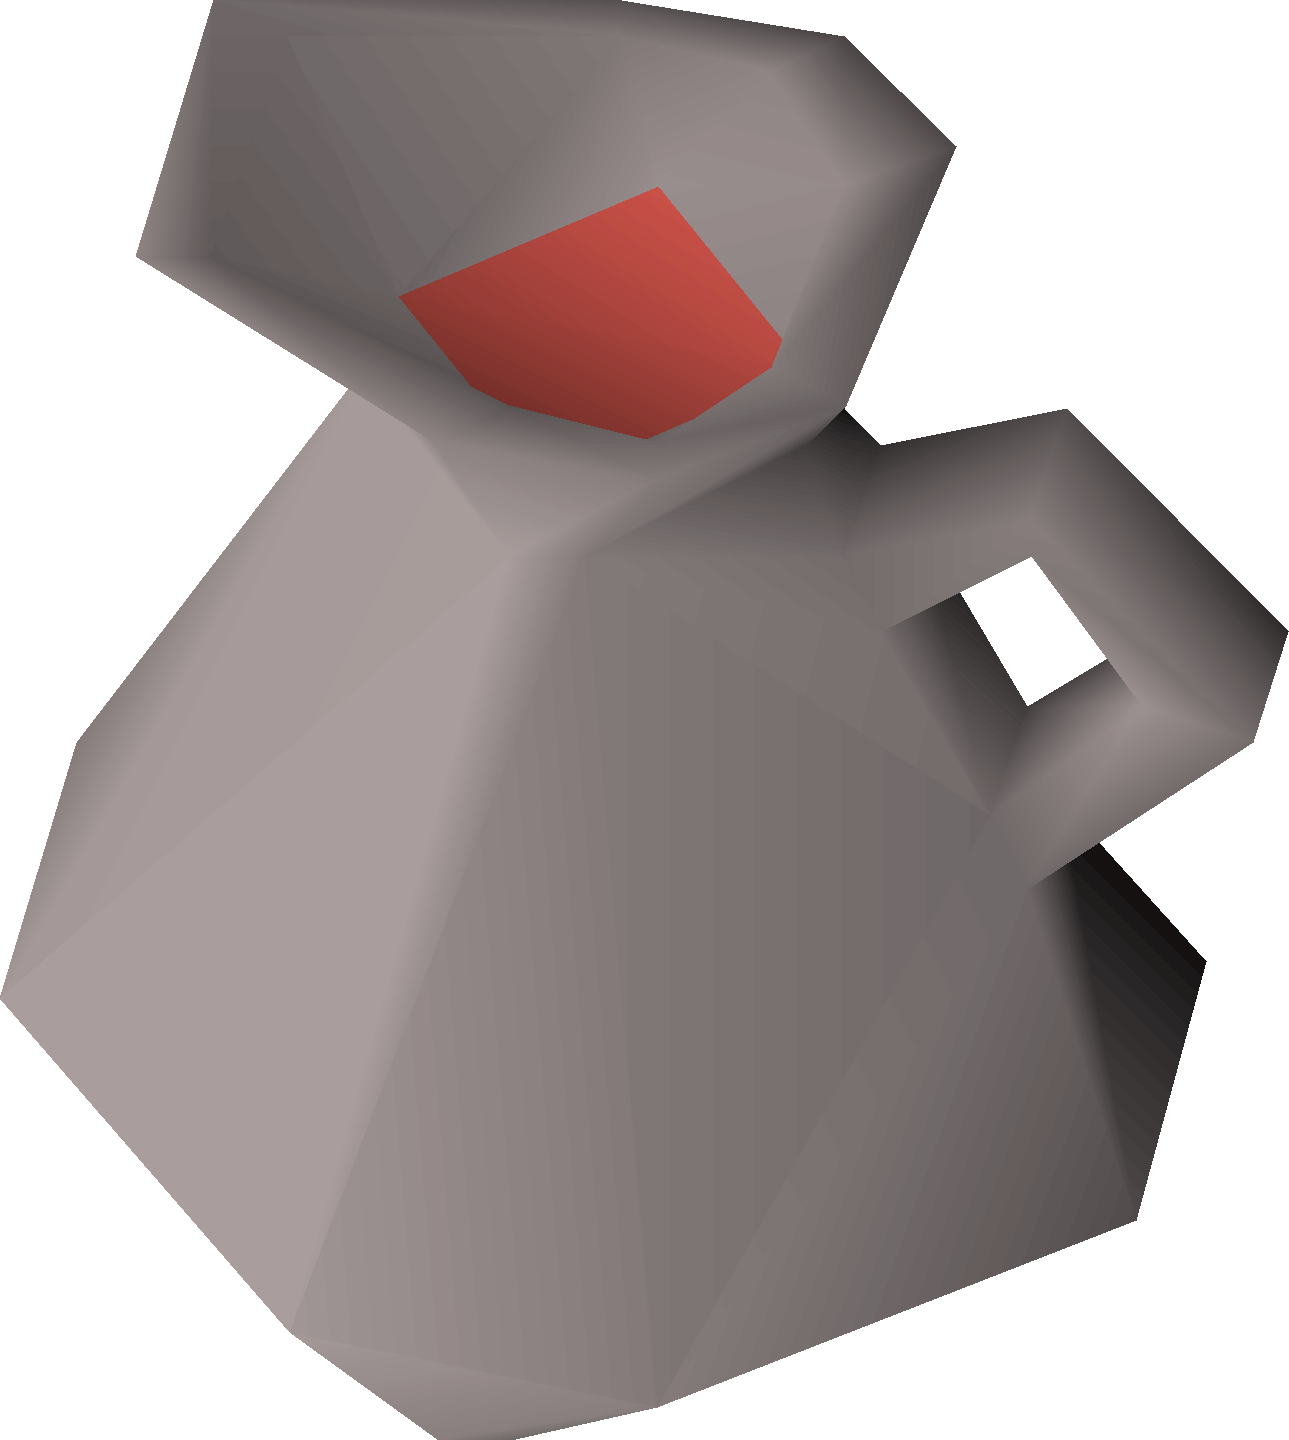 Jug of bad wine - OSRS Wiki